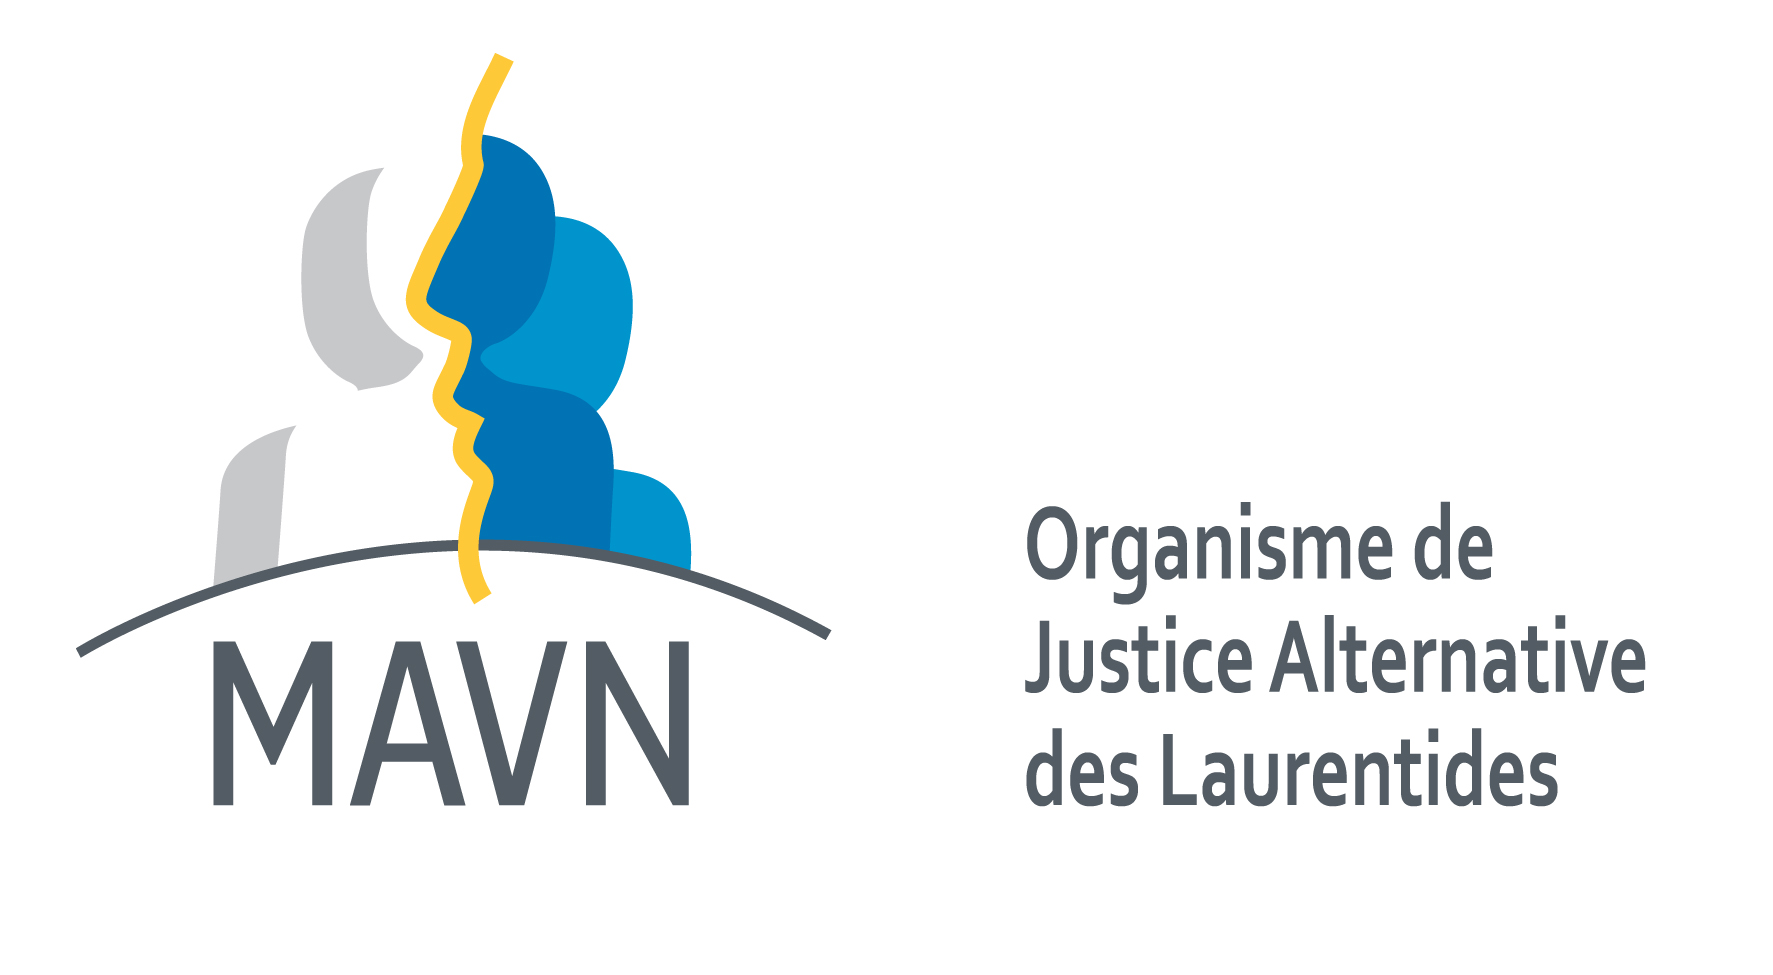 logo MAVN - Organisme de justice alternative